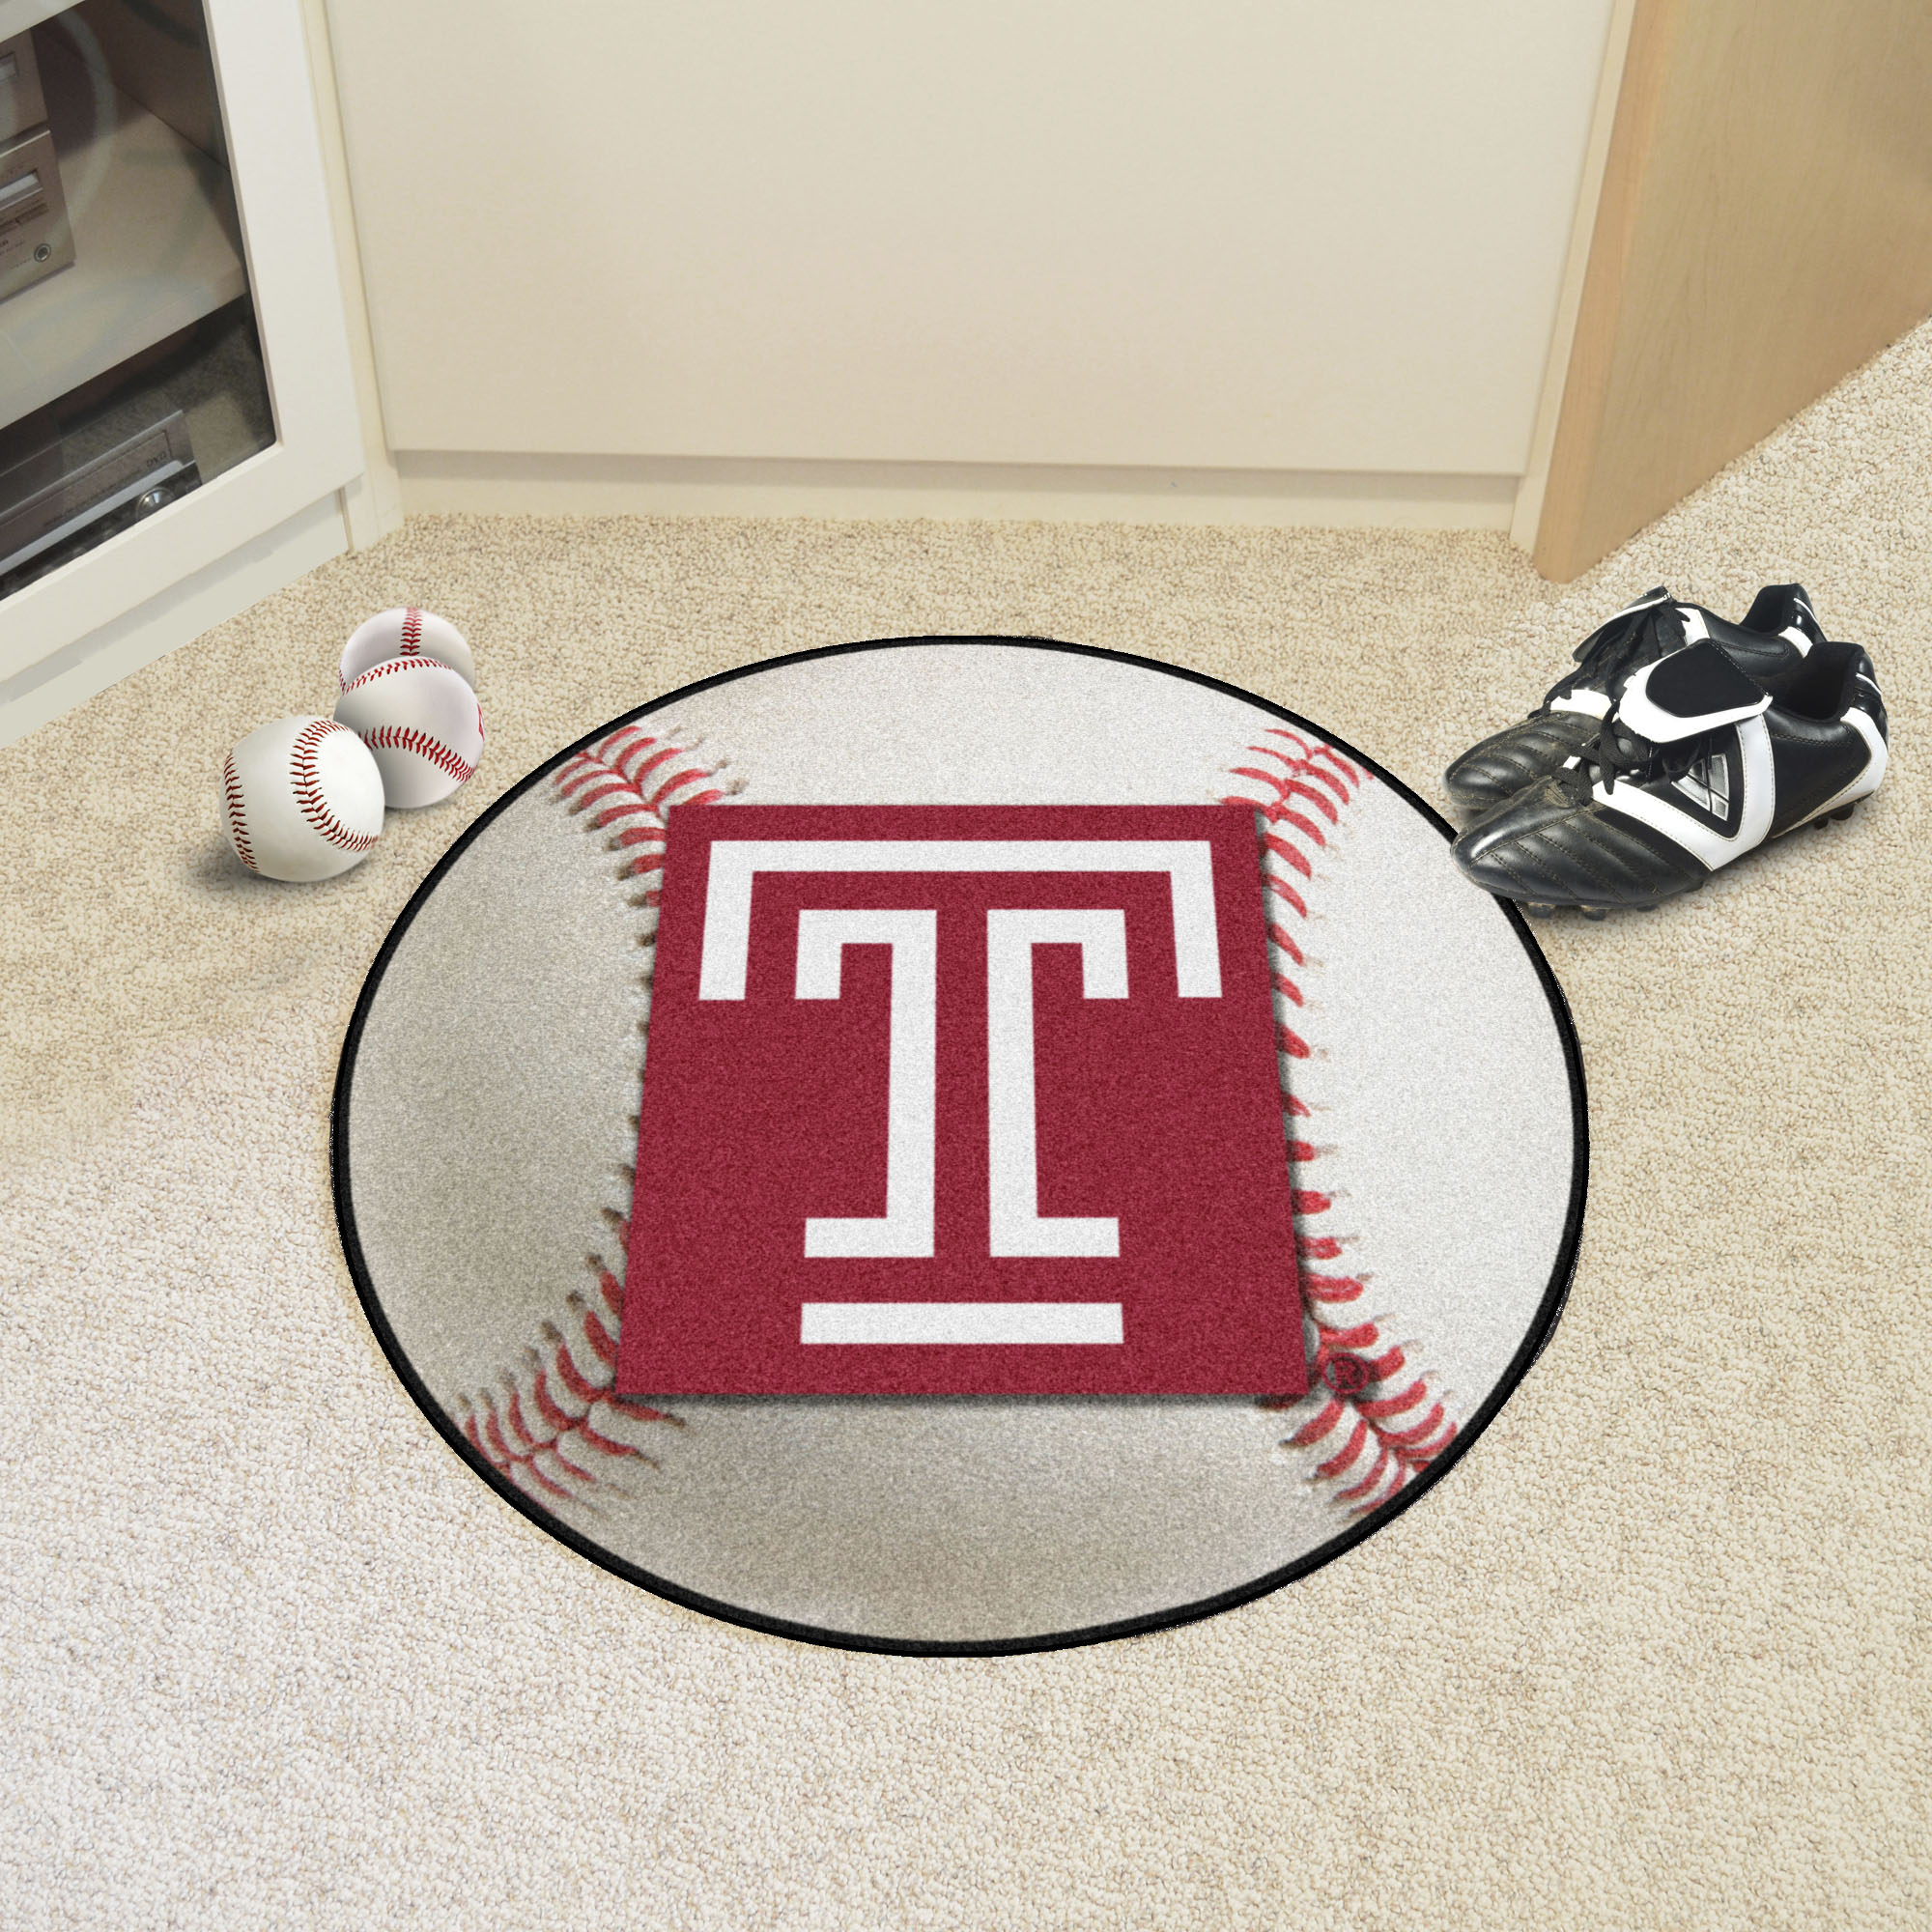 Temple University Ball Shaped Area rugs (Ball Shaped Area Rugs: Baseball)